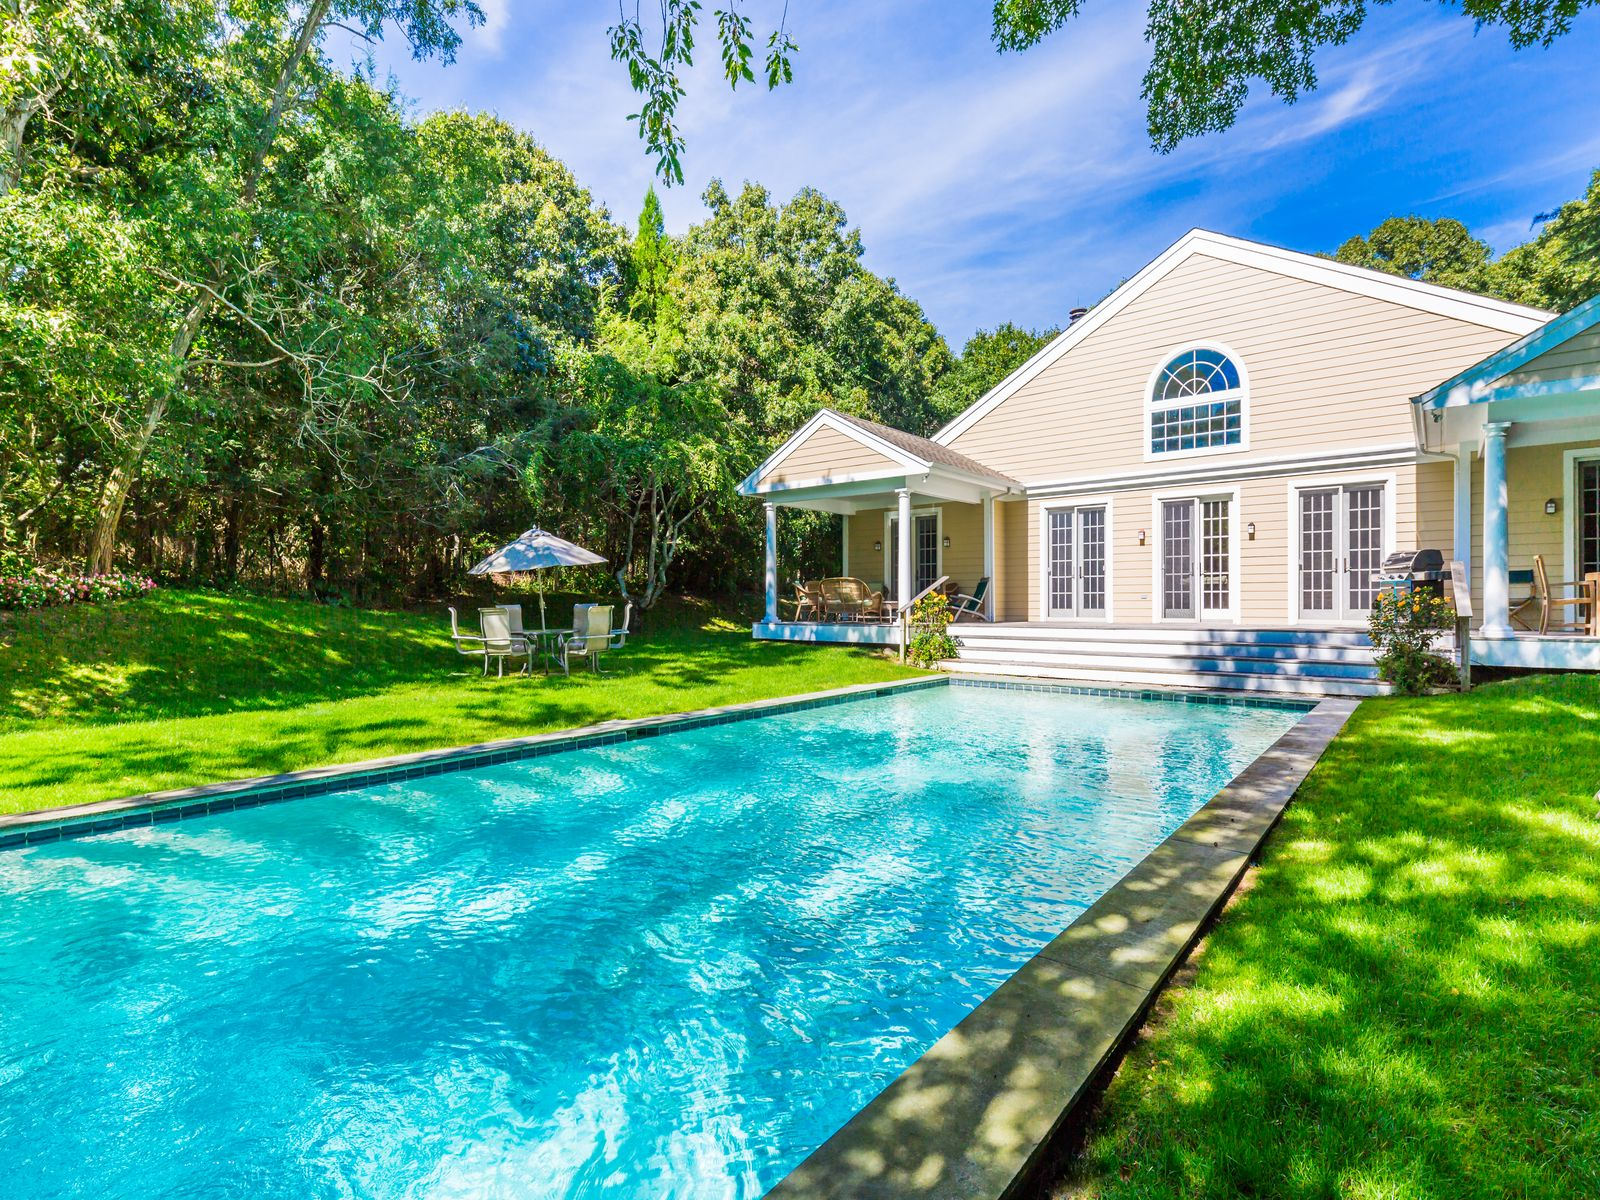 Perfect Post Modern on 2 Acres , Water Mill NY Single Family Home - Hamptons Real Estate